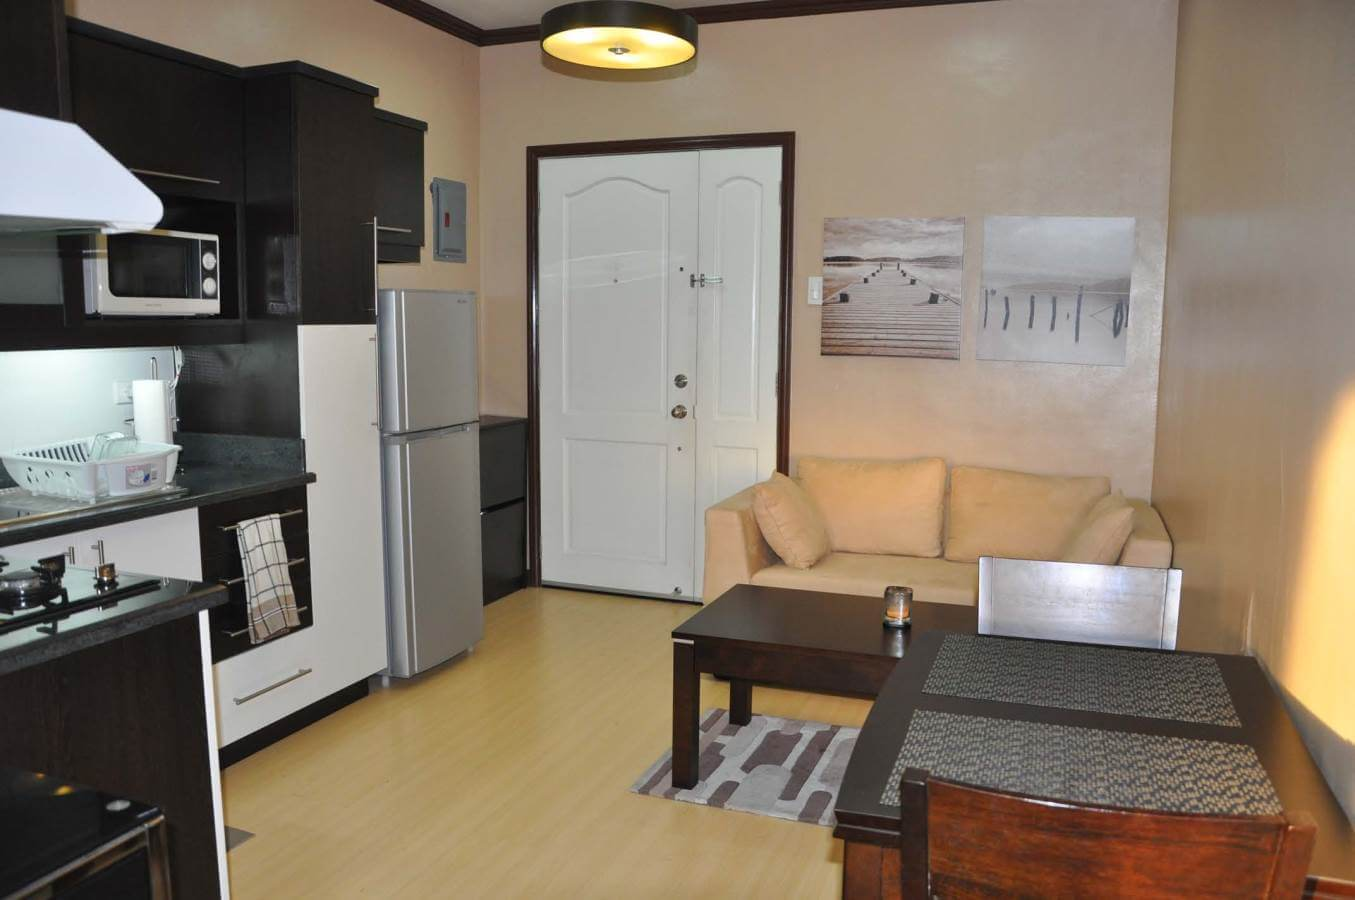 Palaciego uno fully furnished 1 bedroom condo unit for for 1 bedroom house for sale